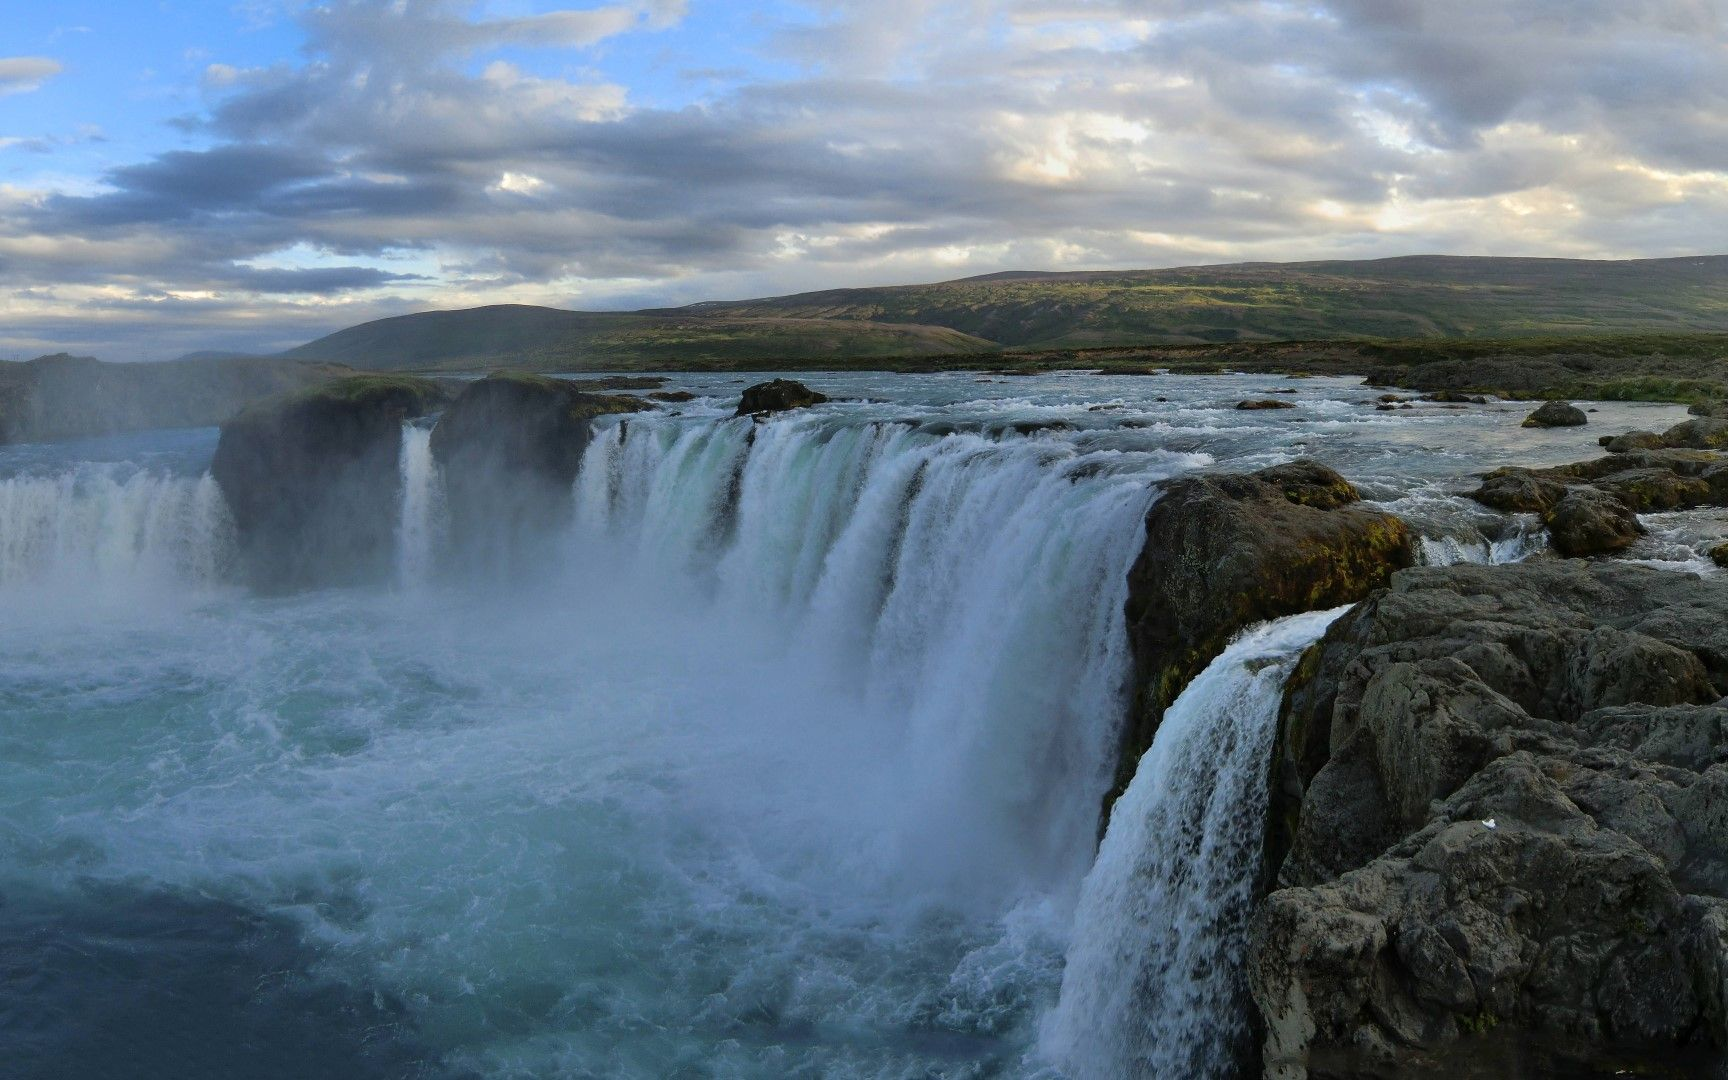 Iceland S Ring Road Wallpapers: 1920x1080 HD 16:9 High Resolution Desktop Wallpapers For